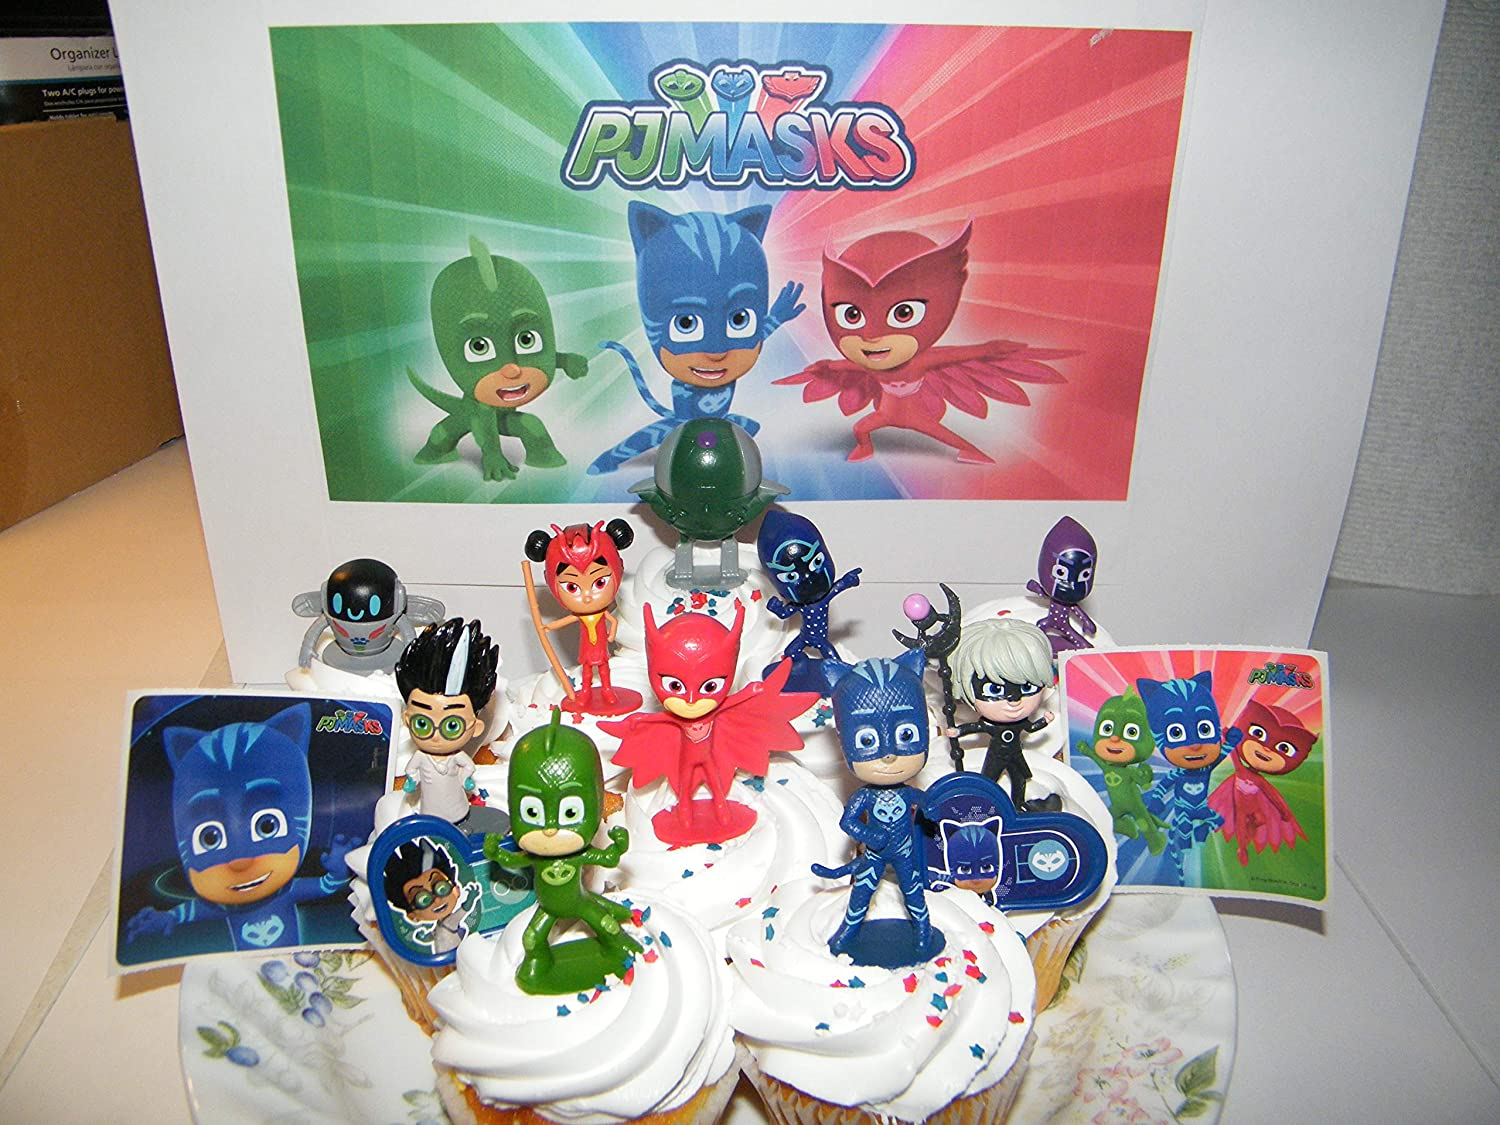 PJ Masks Deluxe Cake Toppers Cupcake Decorations 14 Set with 10 Figures, 2 Decorative Stickers Featuring Gekko, Owlette, Catboy, Yu, Night Ninja, Robot and More!